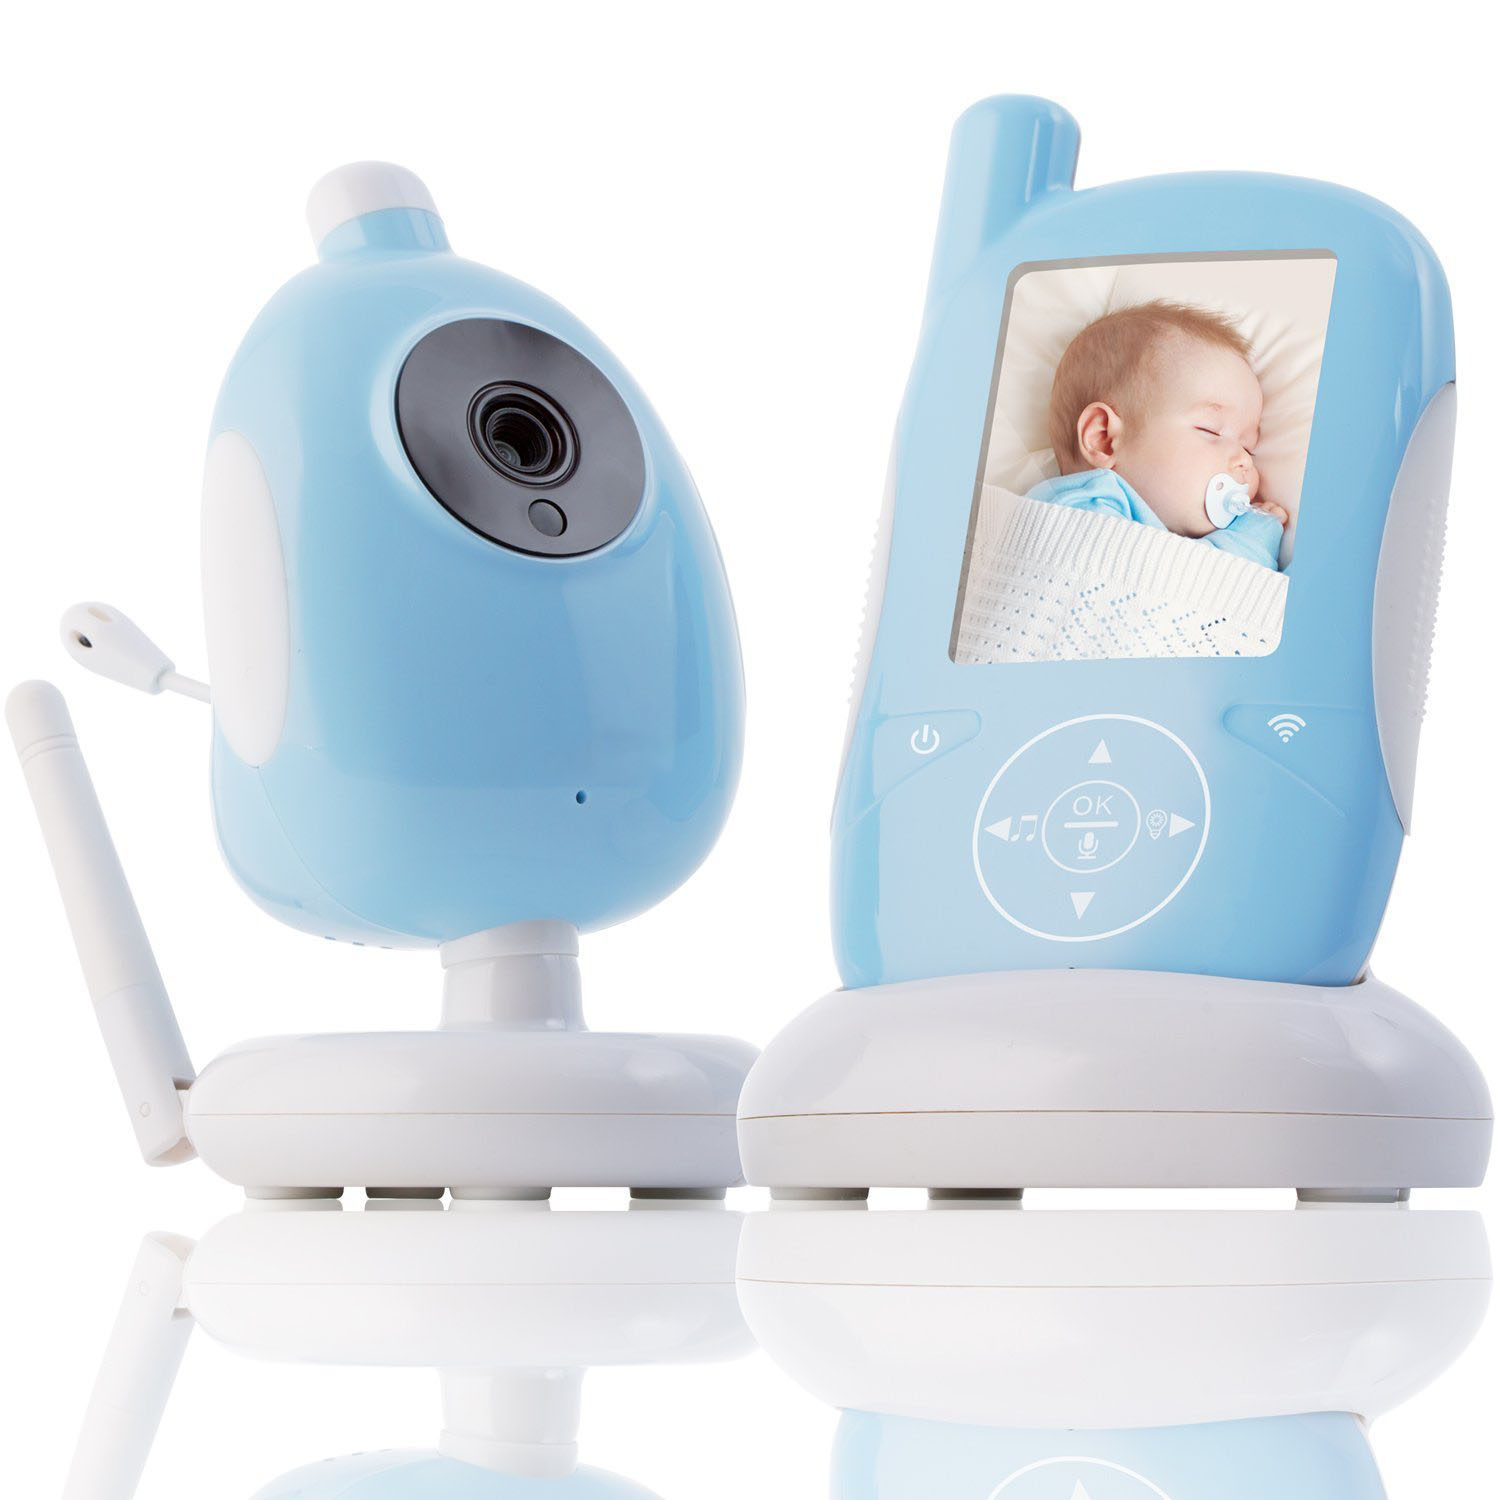 Wireless Video Baby Kids Monitor Security Camera 2/2.4 LCD Screen 2 Way Talk Night Vision 2.4G IR LED Temperature Hassle-Free